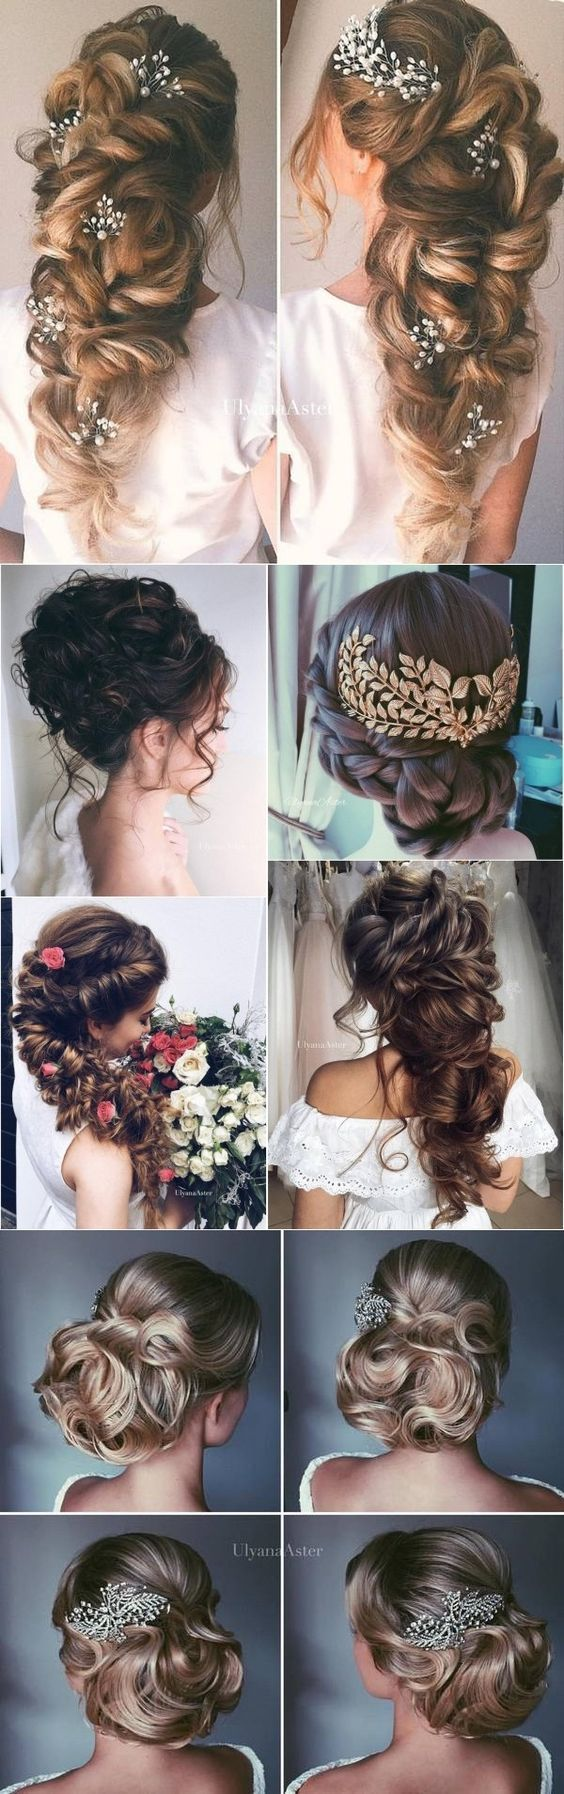 From high-volume & braids to soft curly waves with gorgeous flowers, we have created a beautiful collection of most romantic bridal hairstyles for your wedding day. Loose waves or a beautiful half up wedding hairstyle will last till the after party and is a romantic addition to a traditional strapless wedding gown. These hairstyles work …